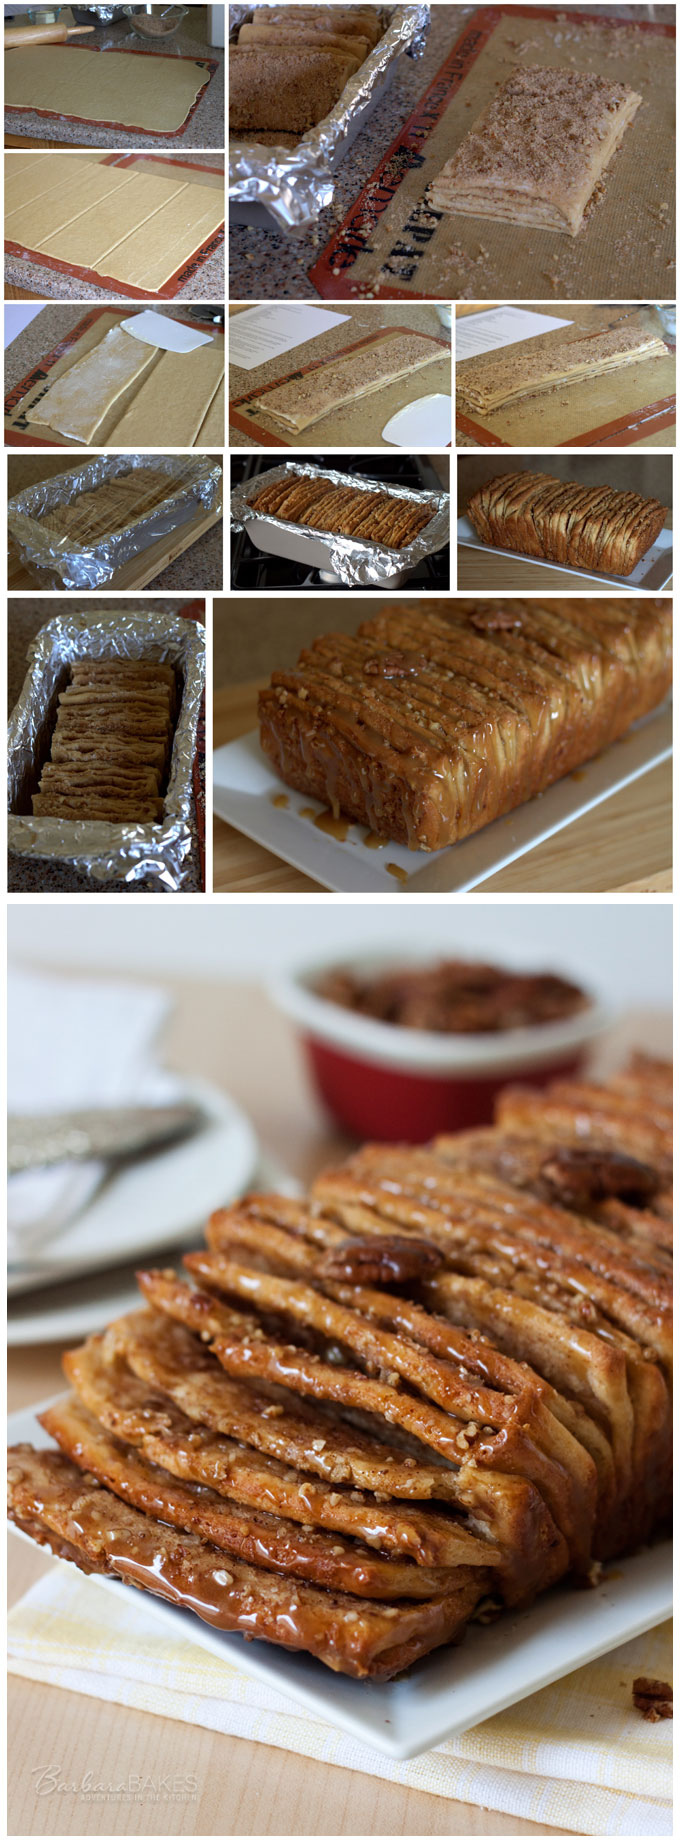 Whole-Wheat-Caramel-Pecan-Pull-Apart-Bread-Collage-2-Barbara-Bakes